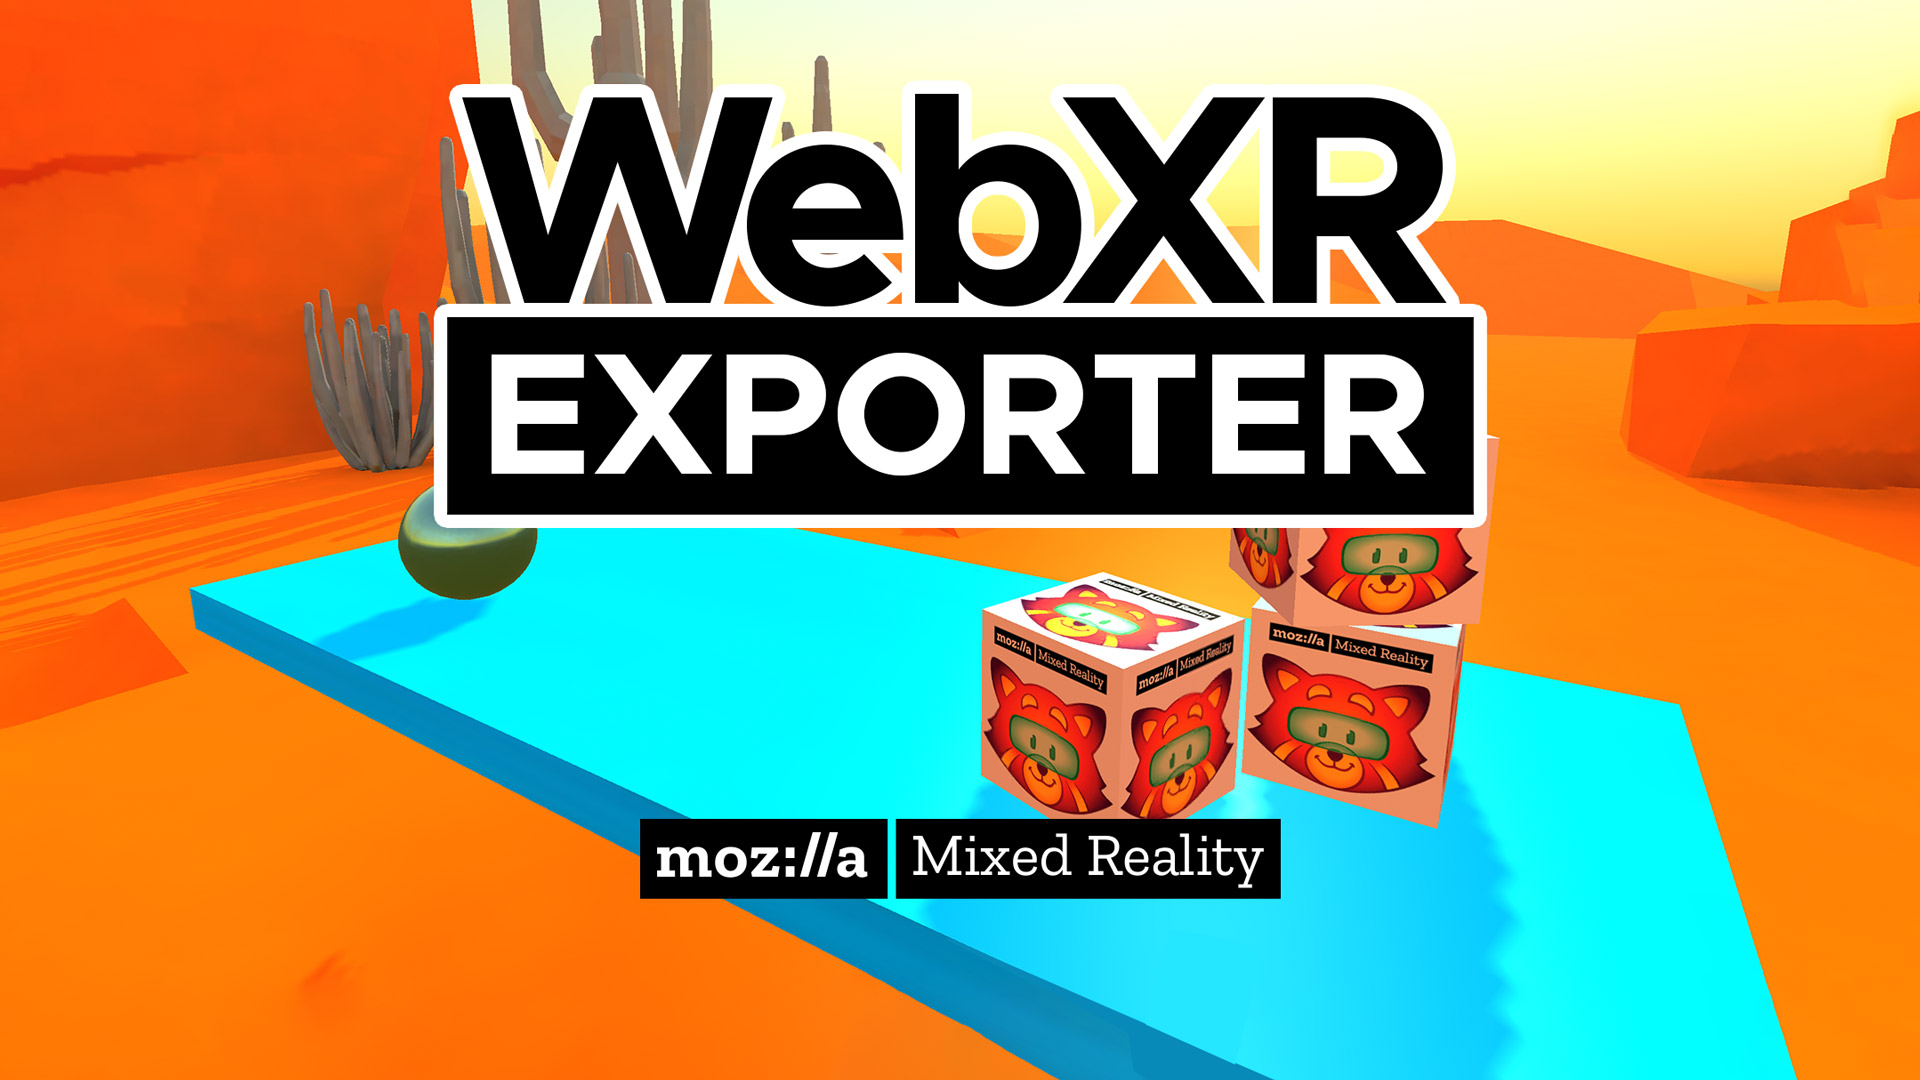 Mozilla Updates the Unity WebXR Exporter to Run VR Apps in the Browser